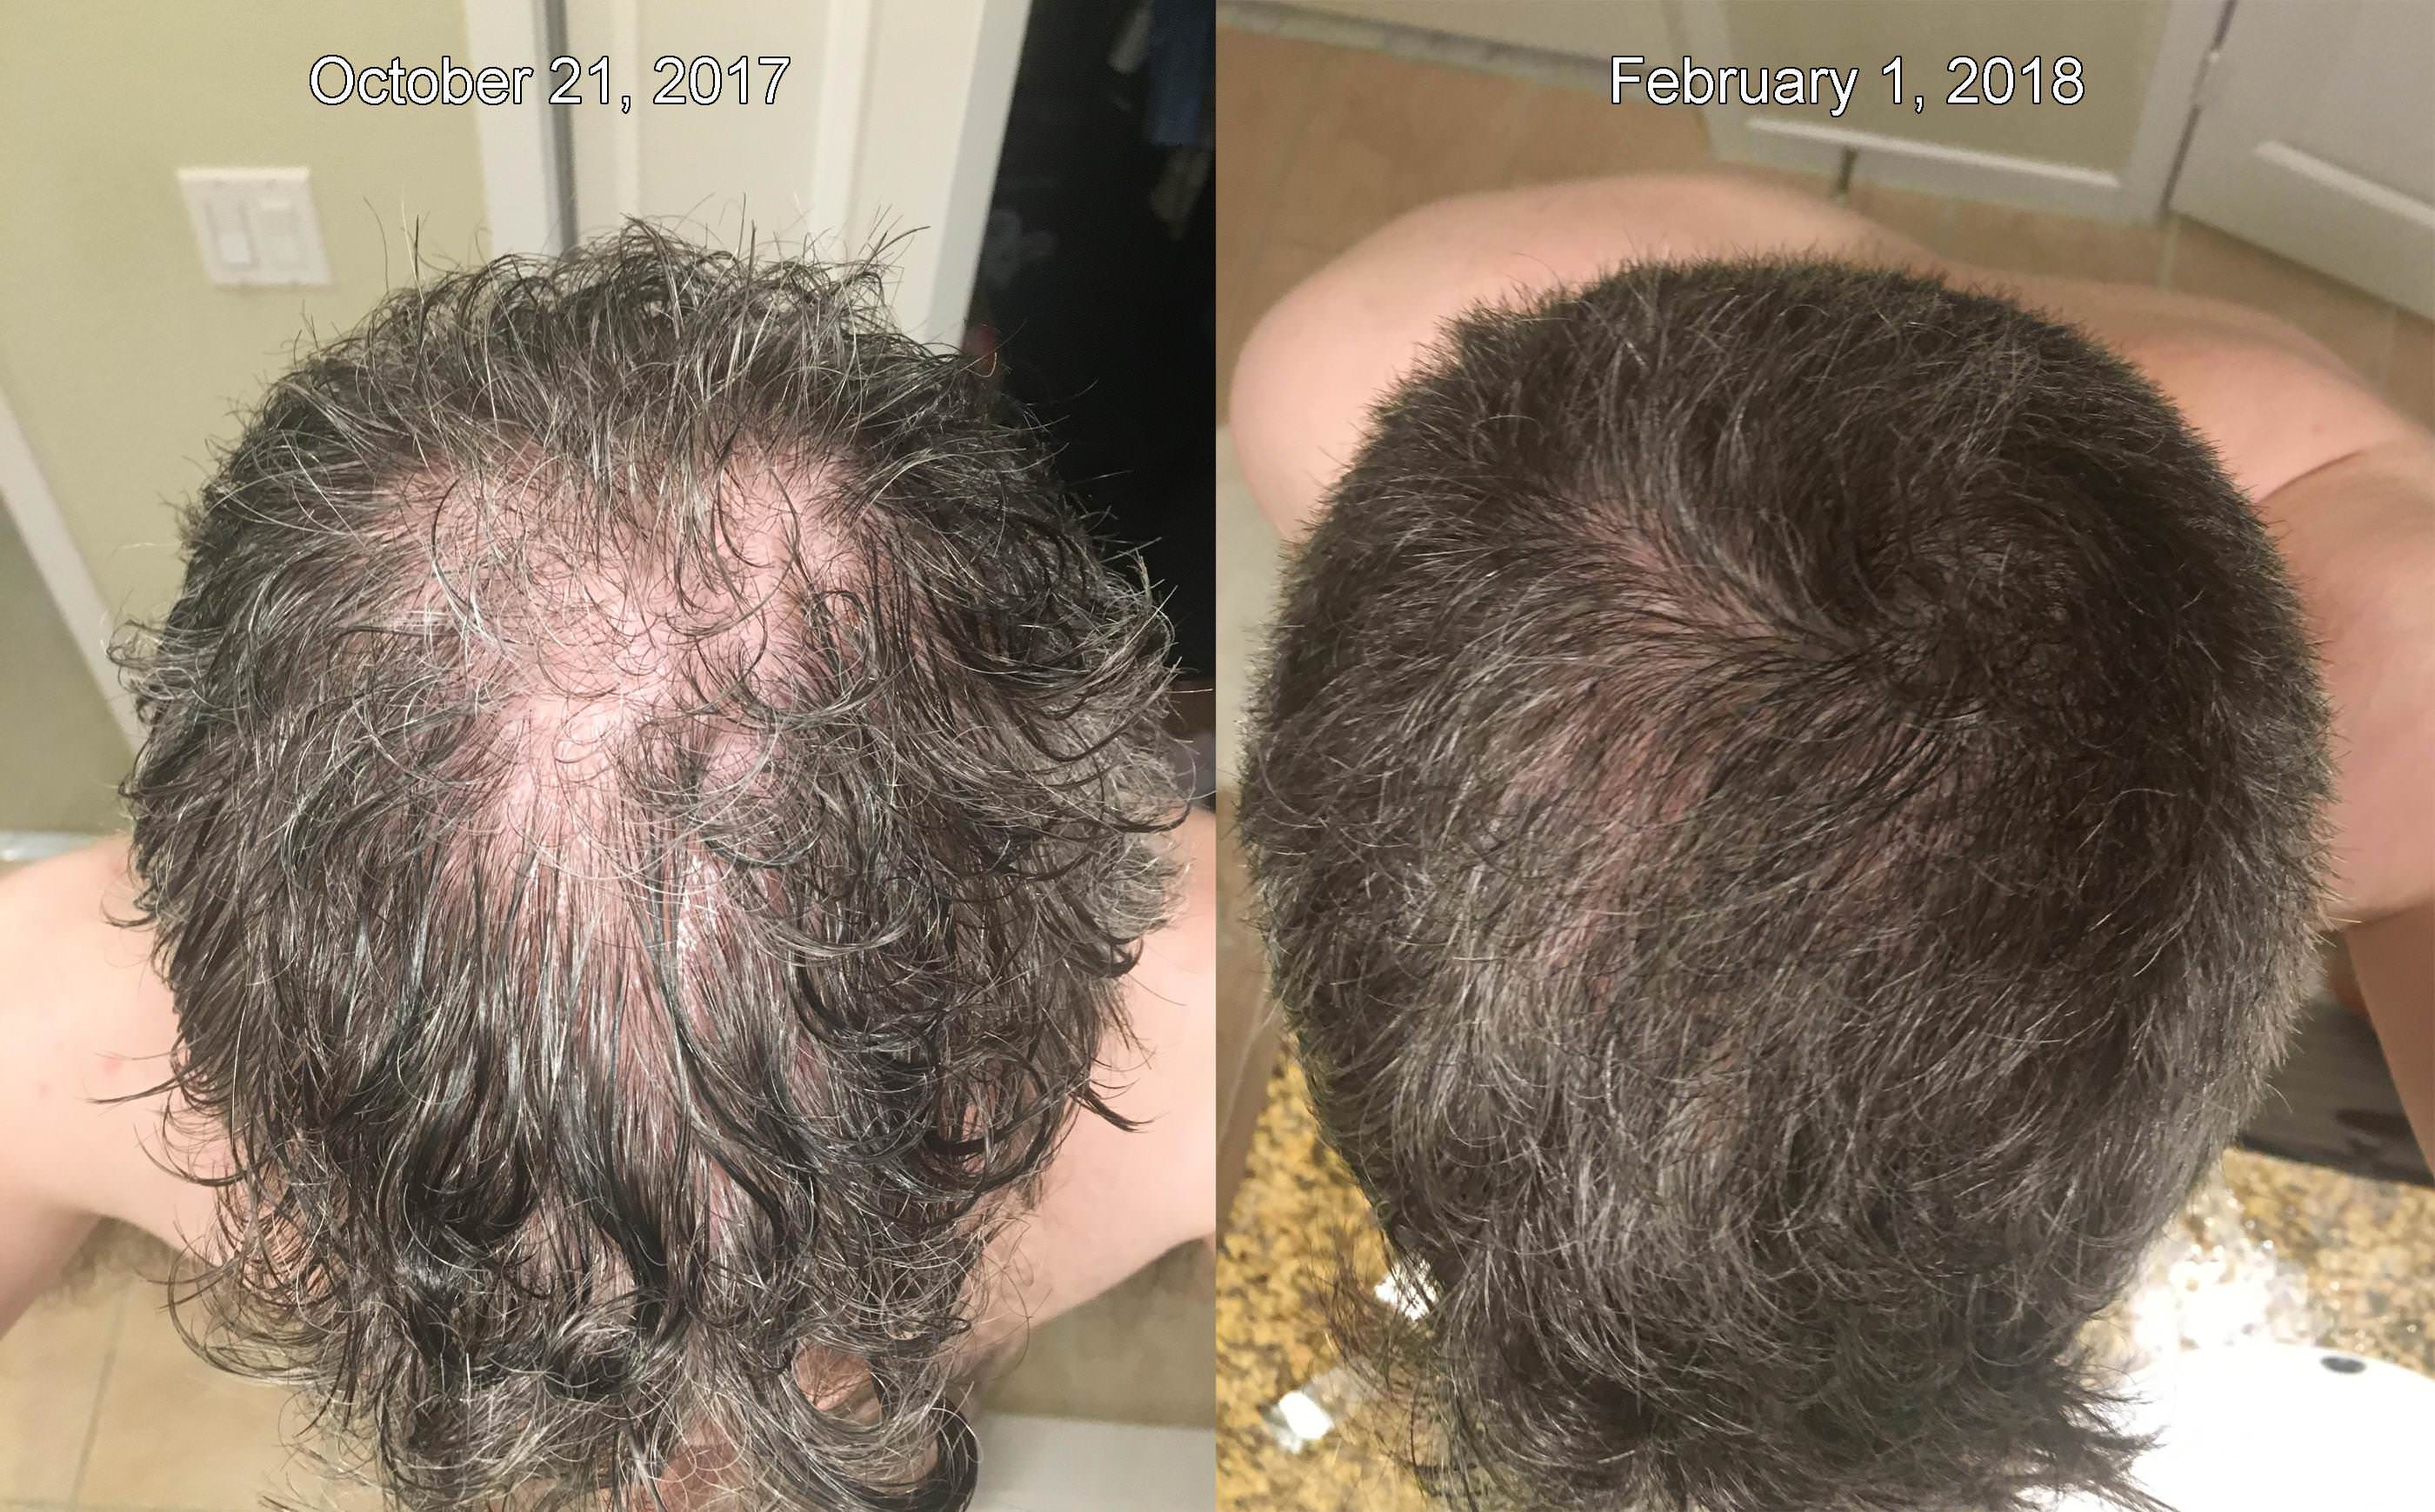 The BEST Before/After Microneedling and Derma Roller Results